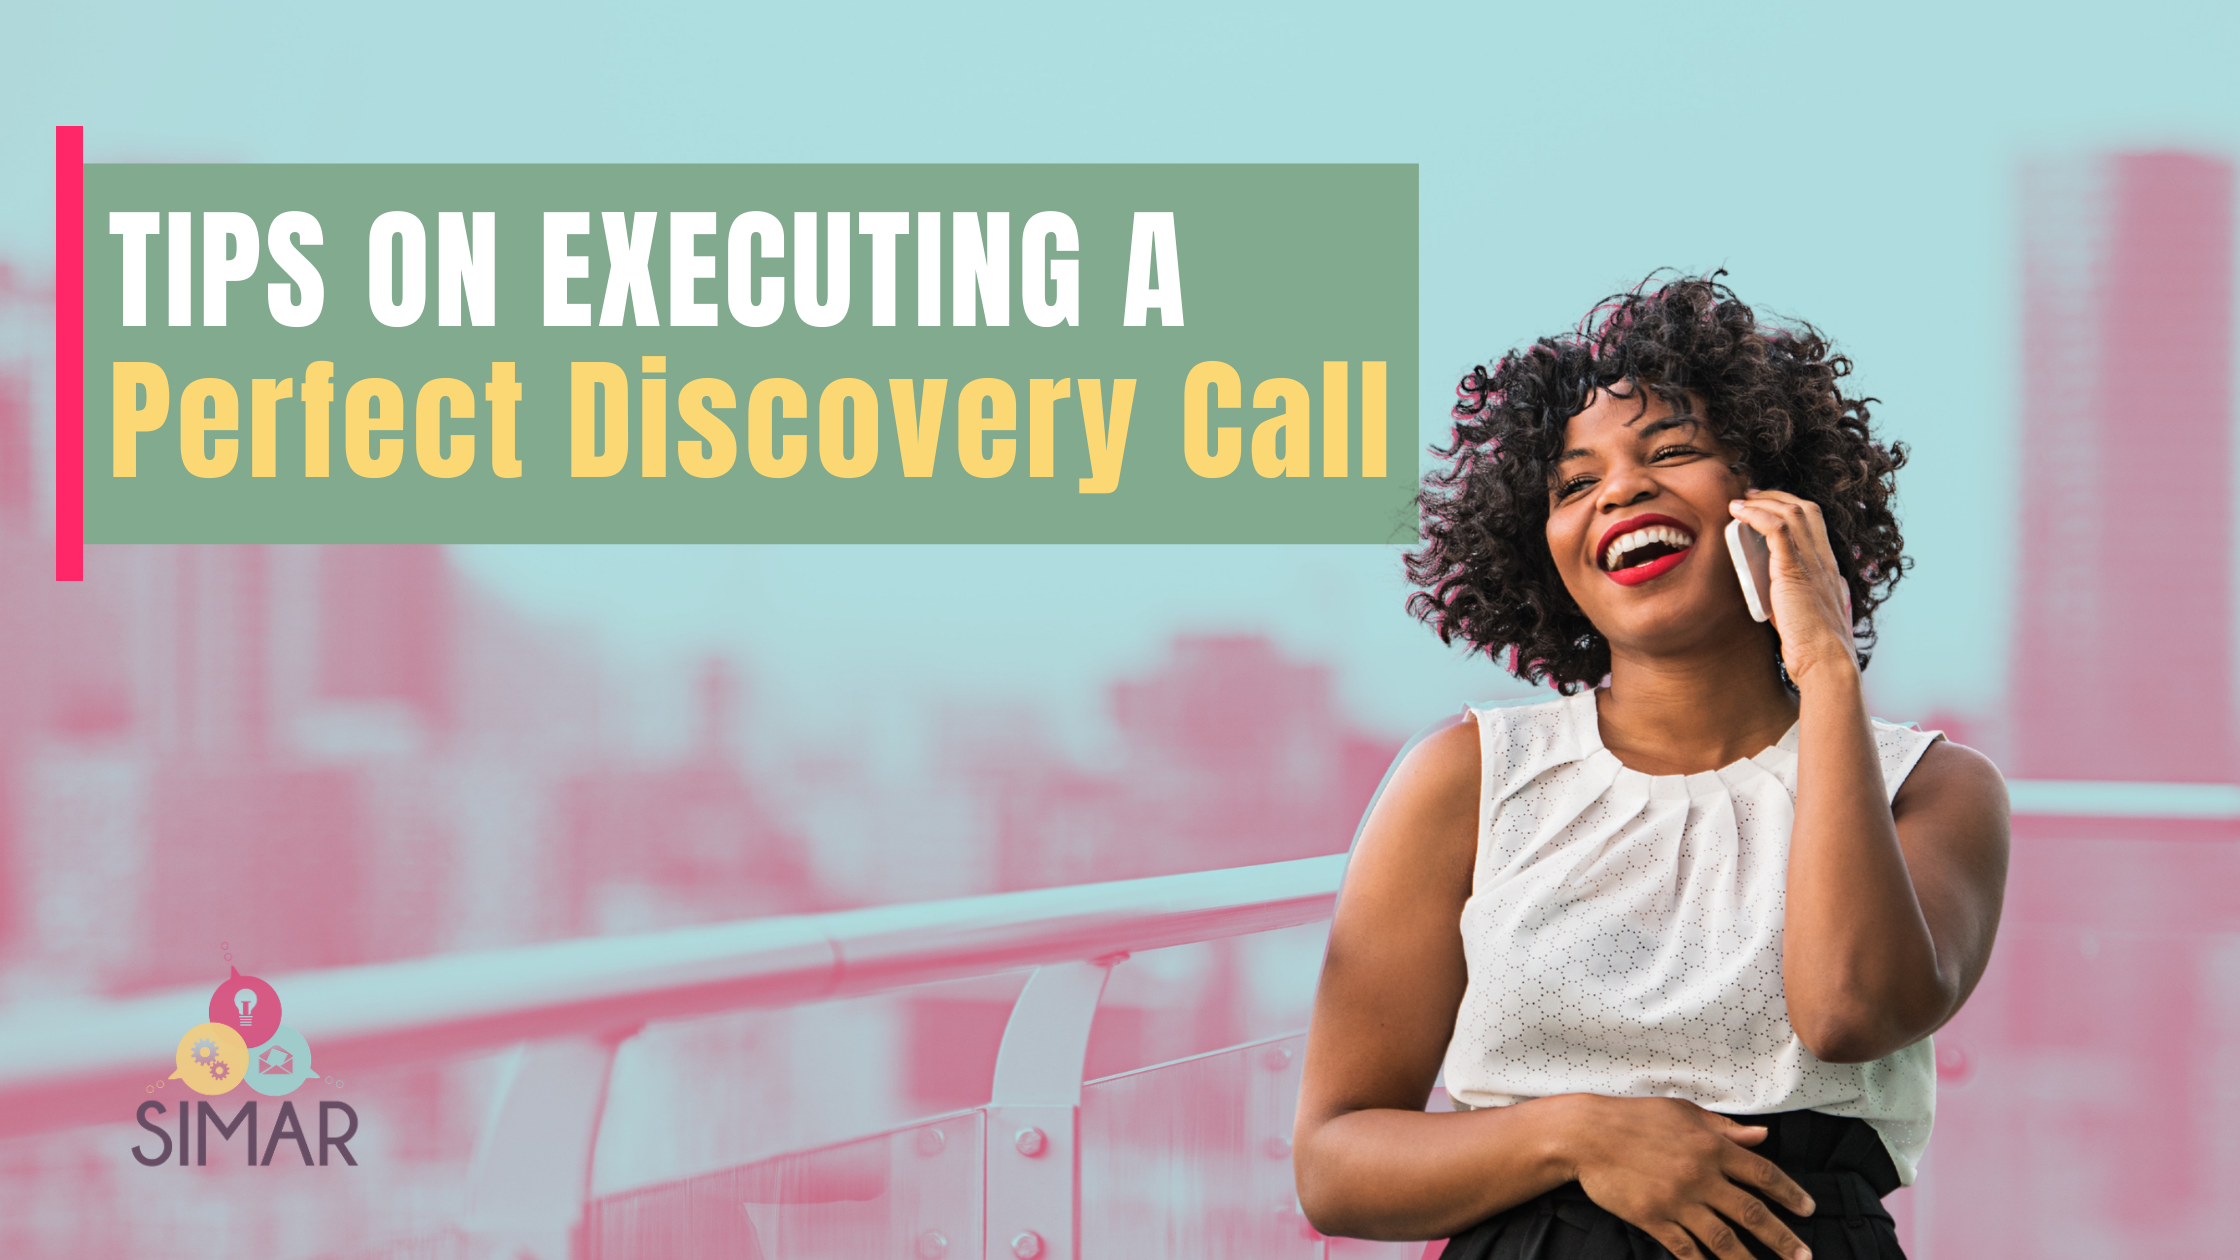 Tips on Executing A Perfect Discovery Call